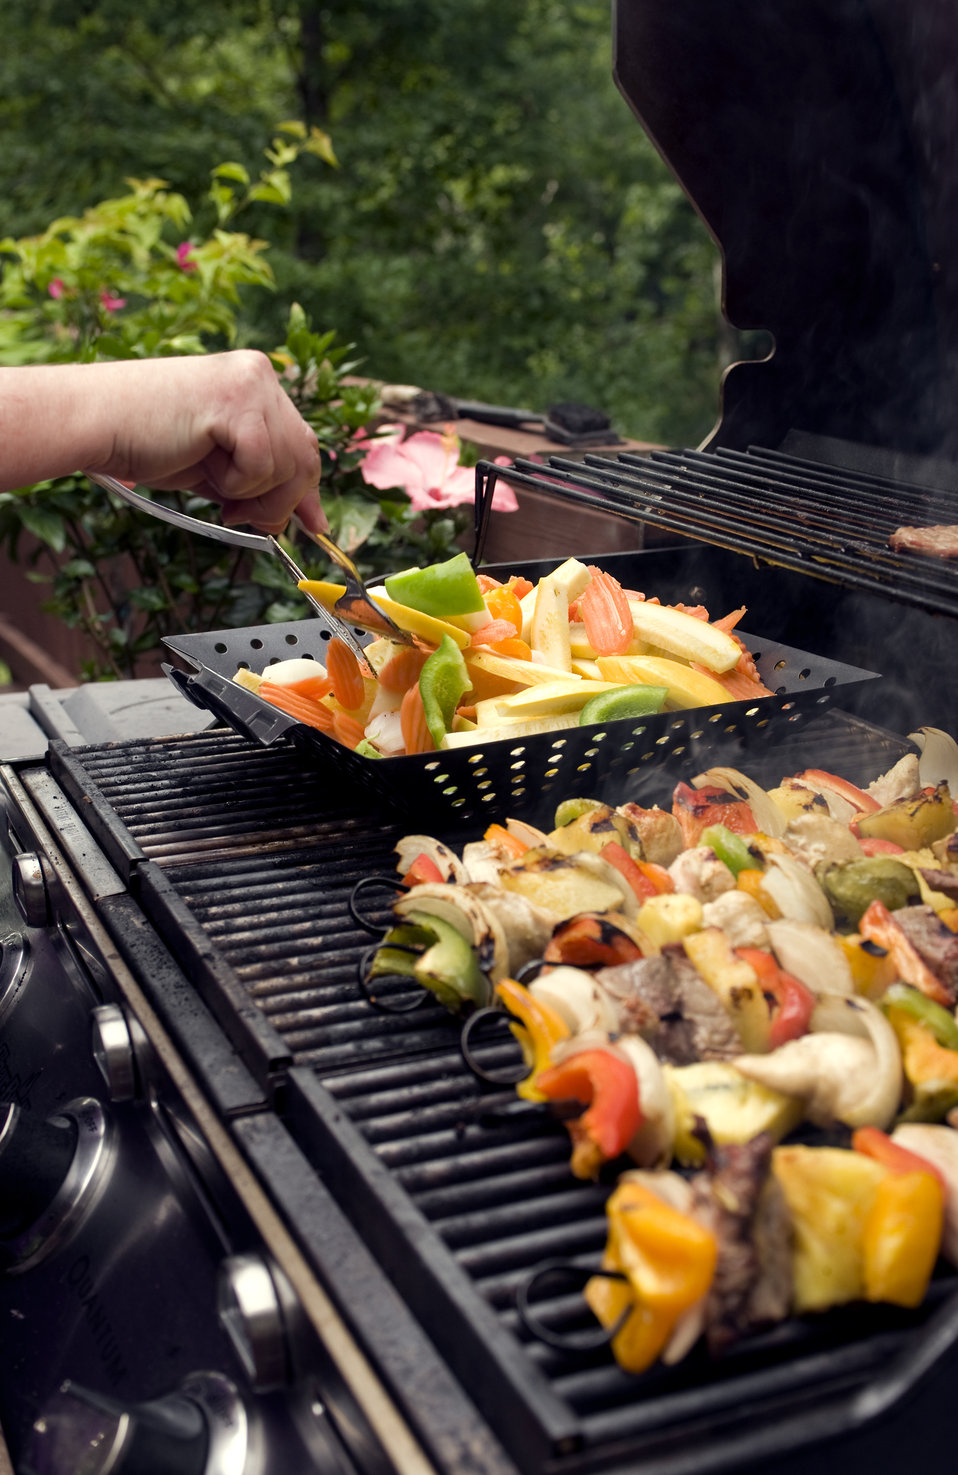 This image depicts four freshly-prepared kabobs, which had been set atop an outdoor stainless steel gas grill, and were cooking. The skewers